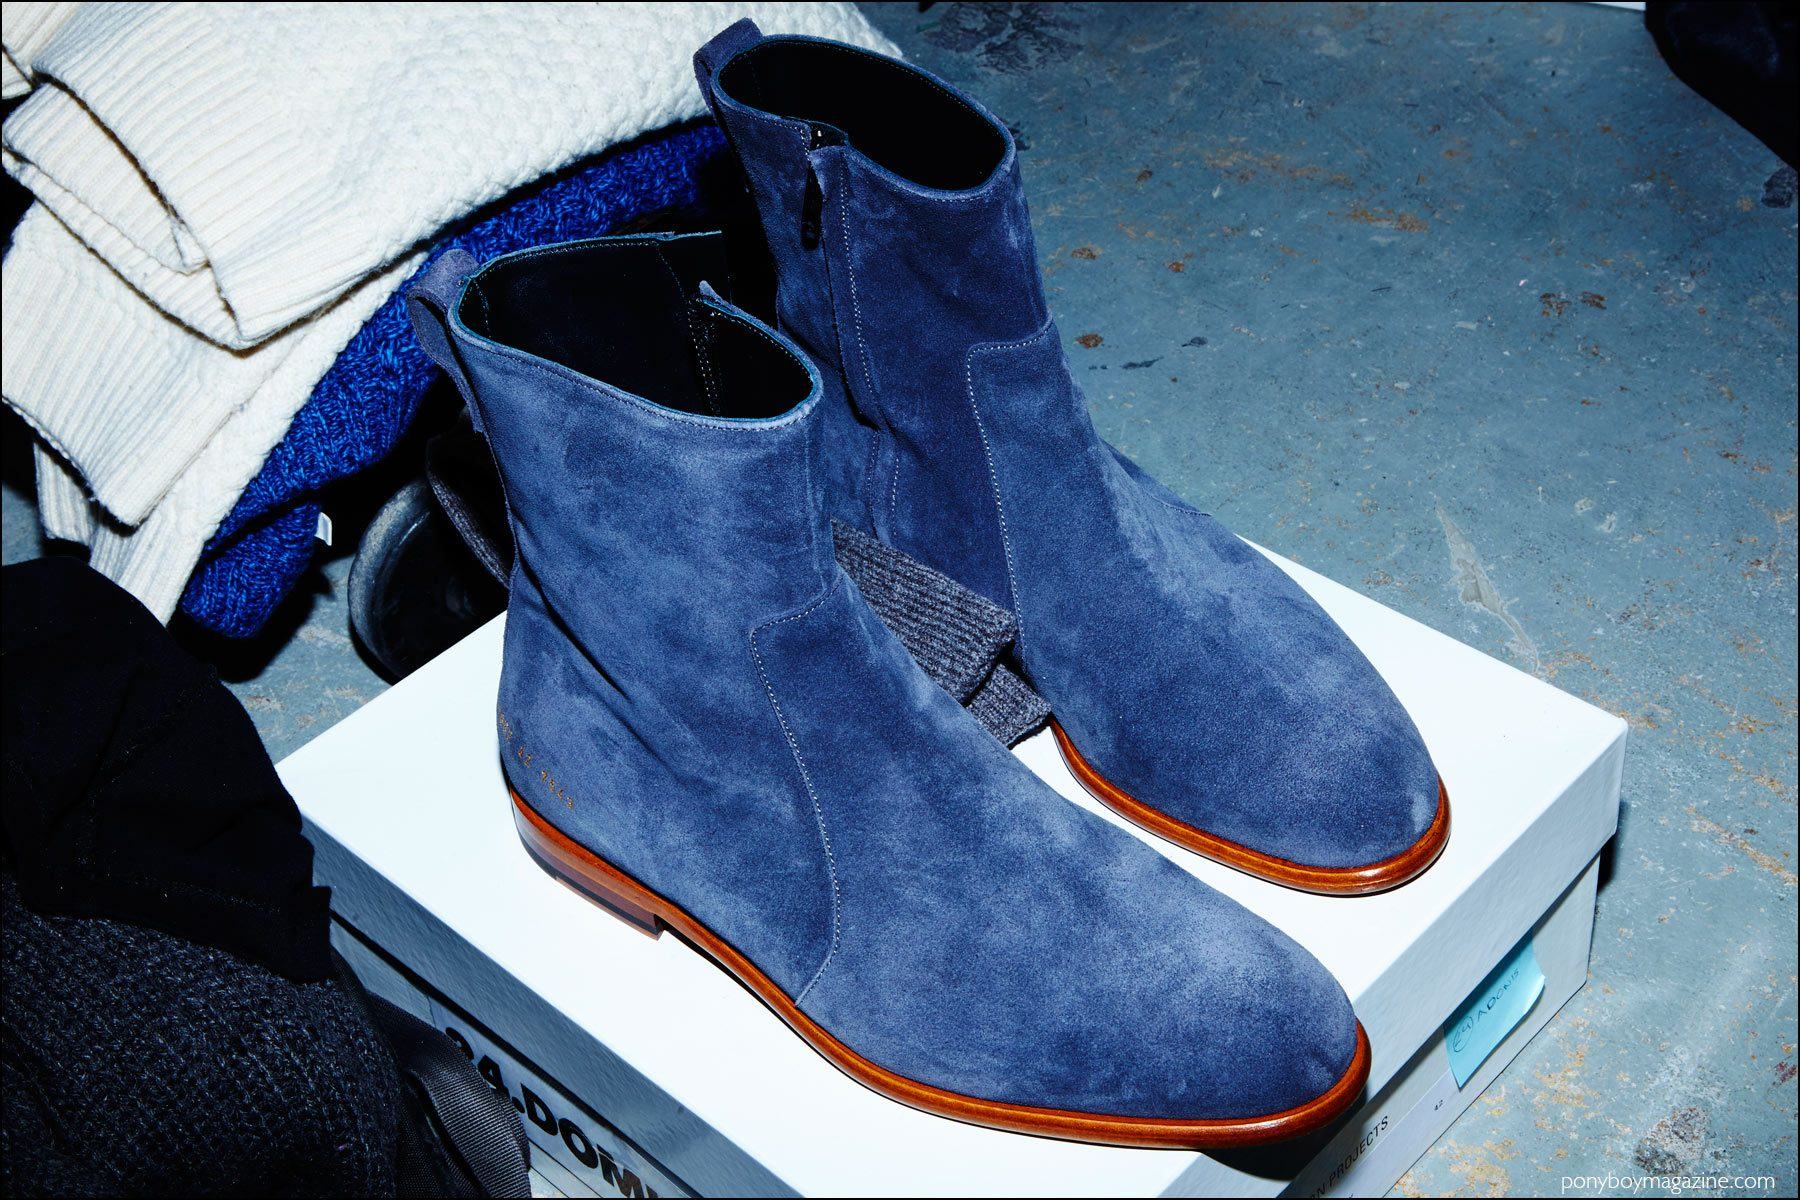 Suede Chelsea Boots by Common Objects, backstage at Robert Geller F/W16 menswear show. Photography by Alexander Thompson for Ponyboy magazine NY.